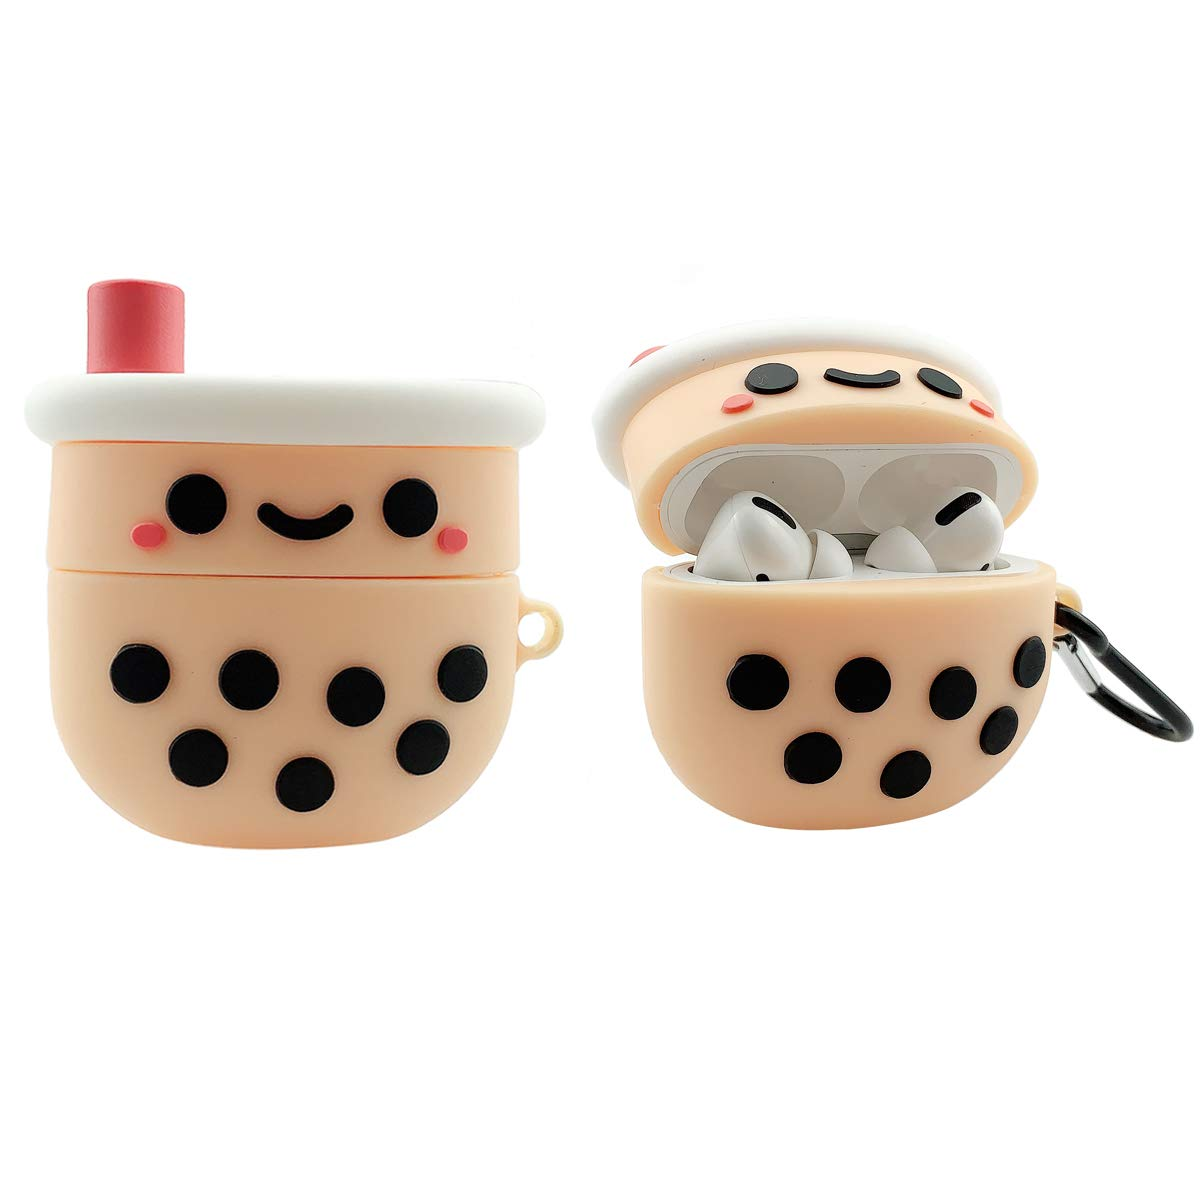 Molova Case For Airpods Pro Airpods 3 Soft Silicone 3d Cute Funny